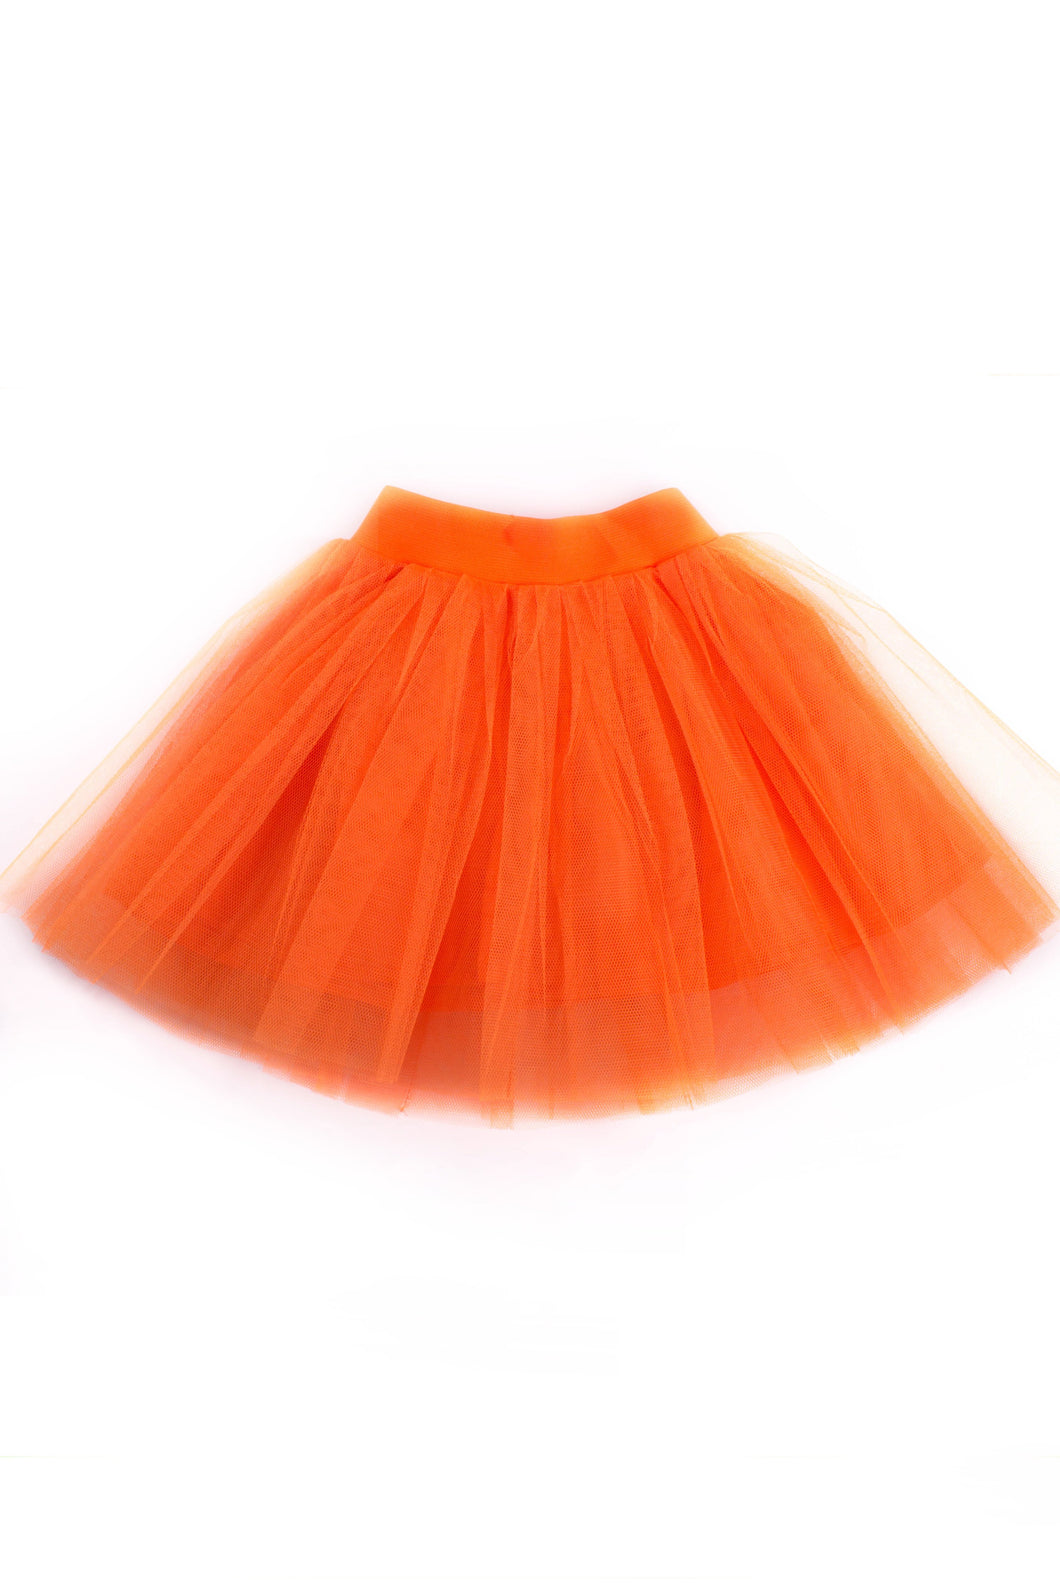 Orange Tutu Skirt - Sibahle Collection